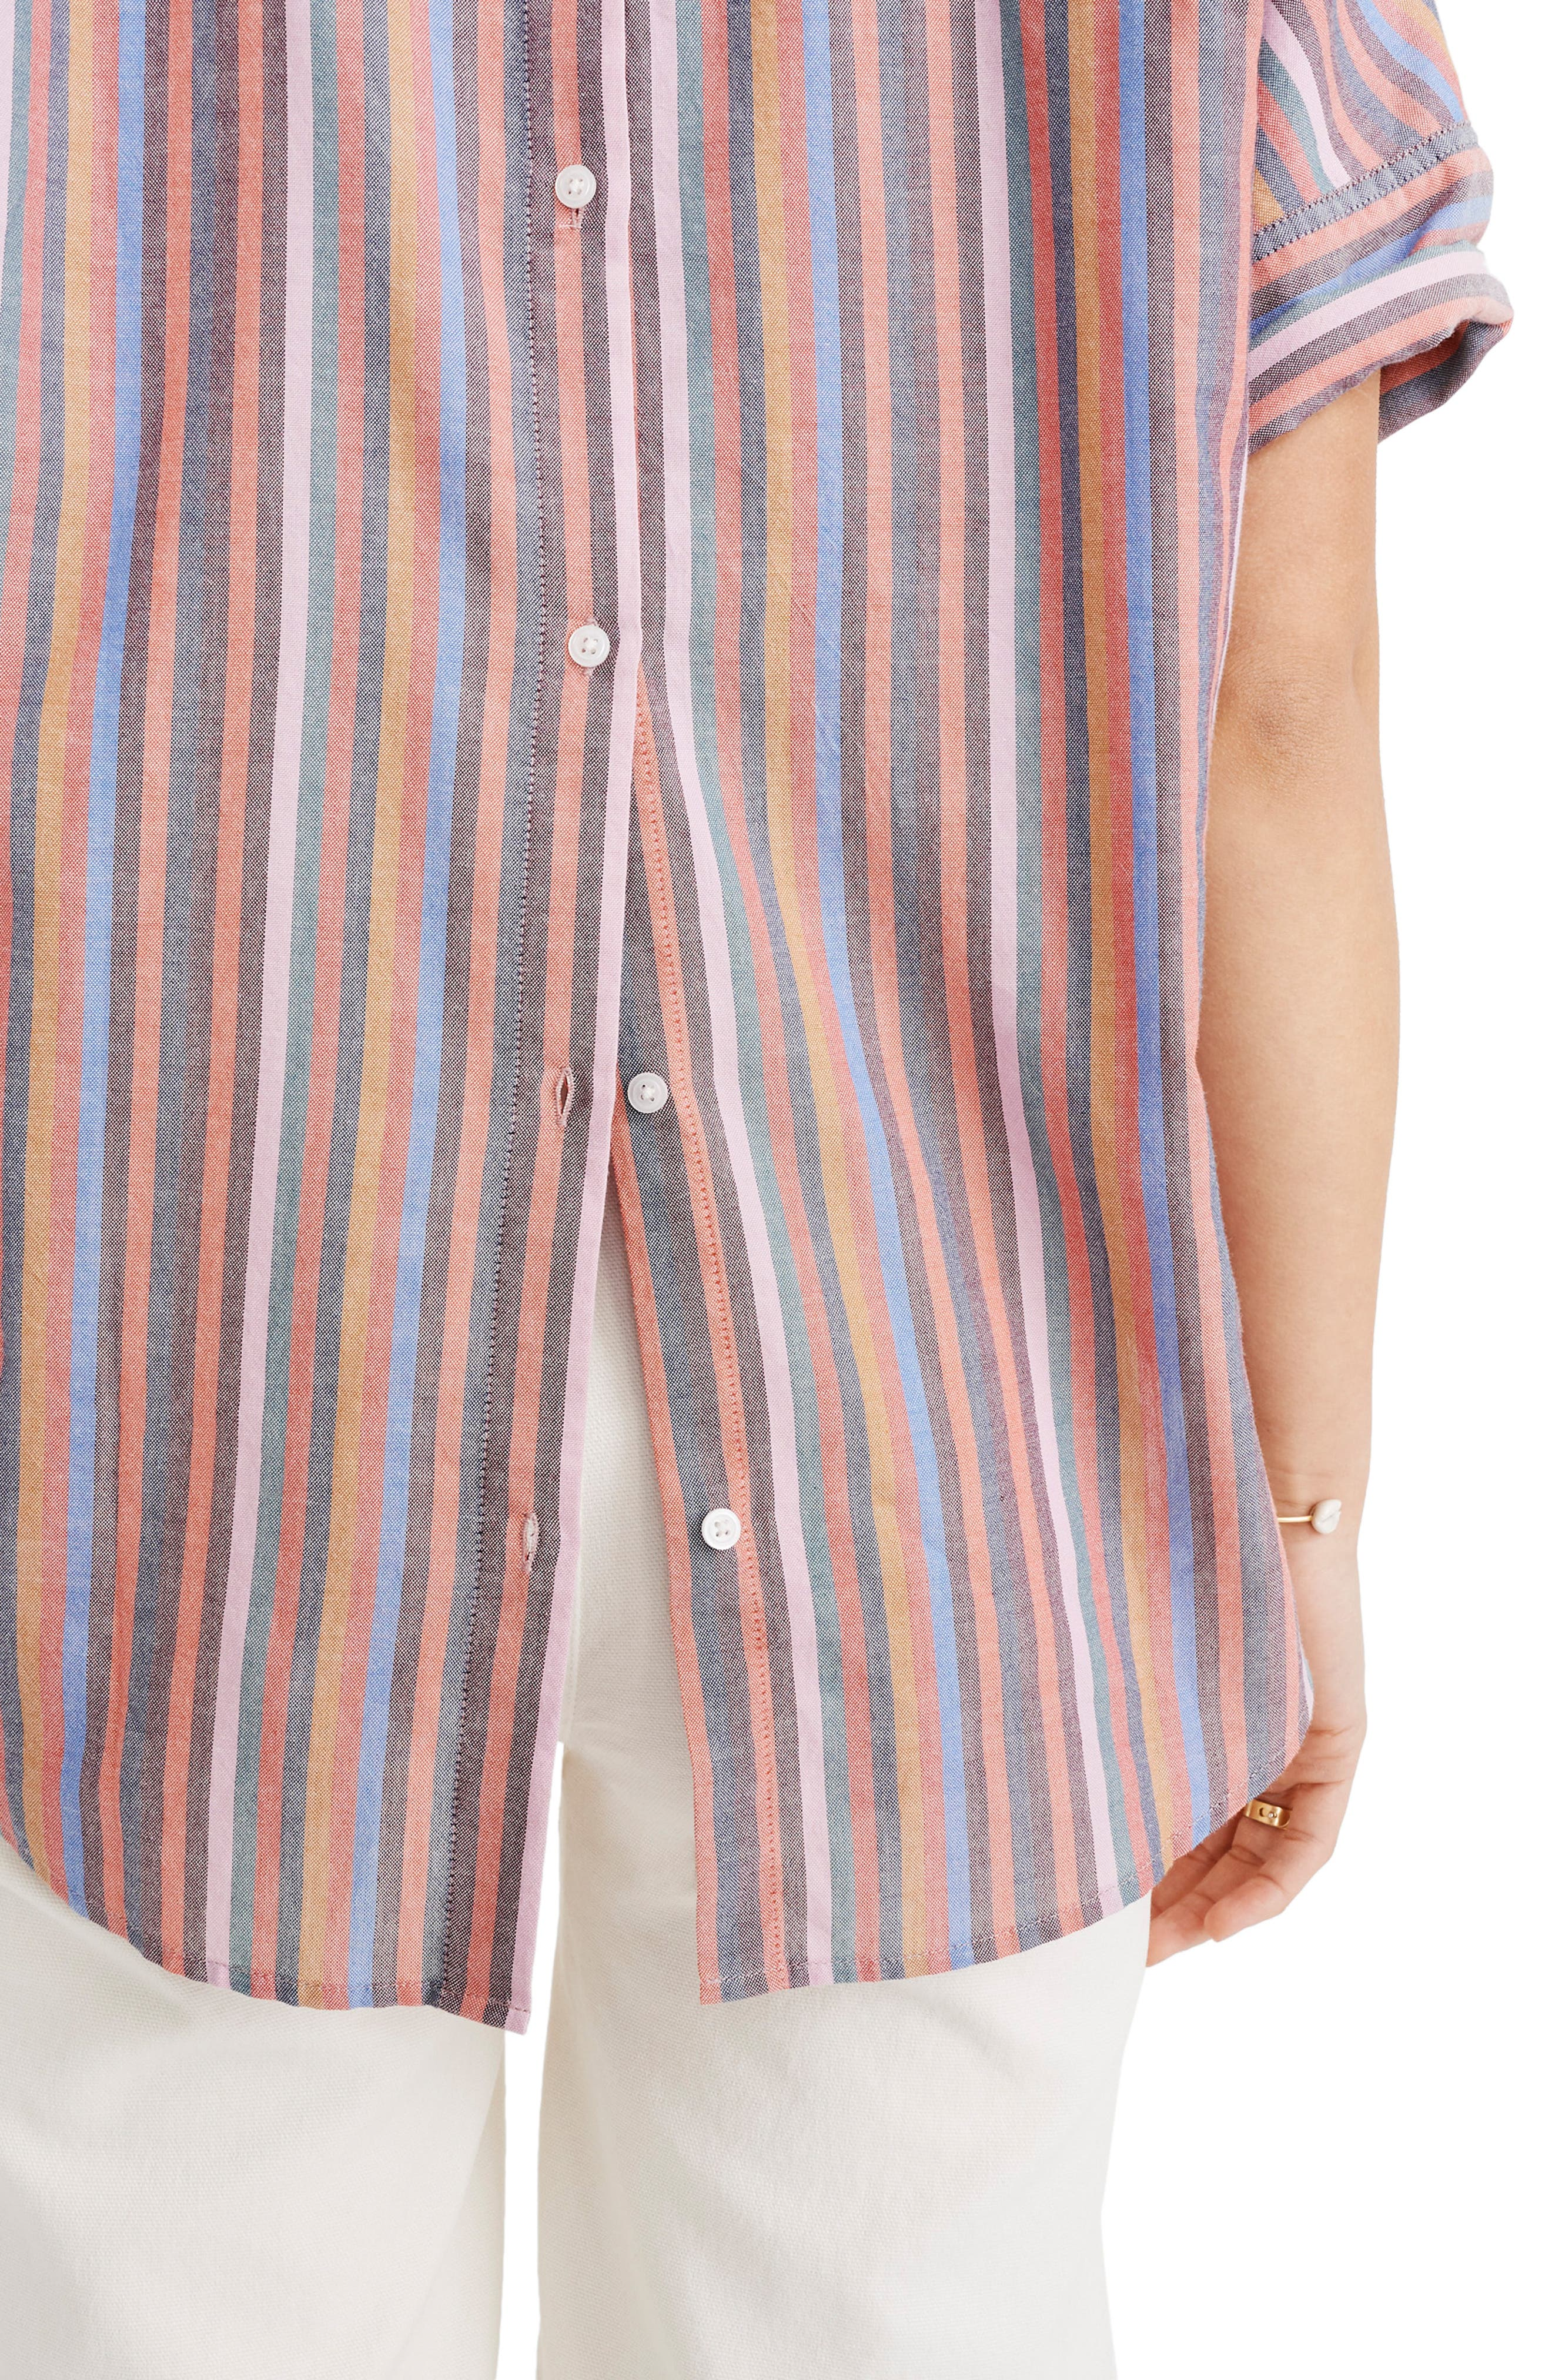 MADEWELL, Courier Rainbow Stripe Button Back Shirt, Alternate thumbnail 4, color, MULLED WINE SMITH STRIPE